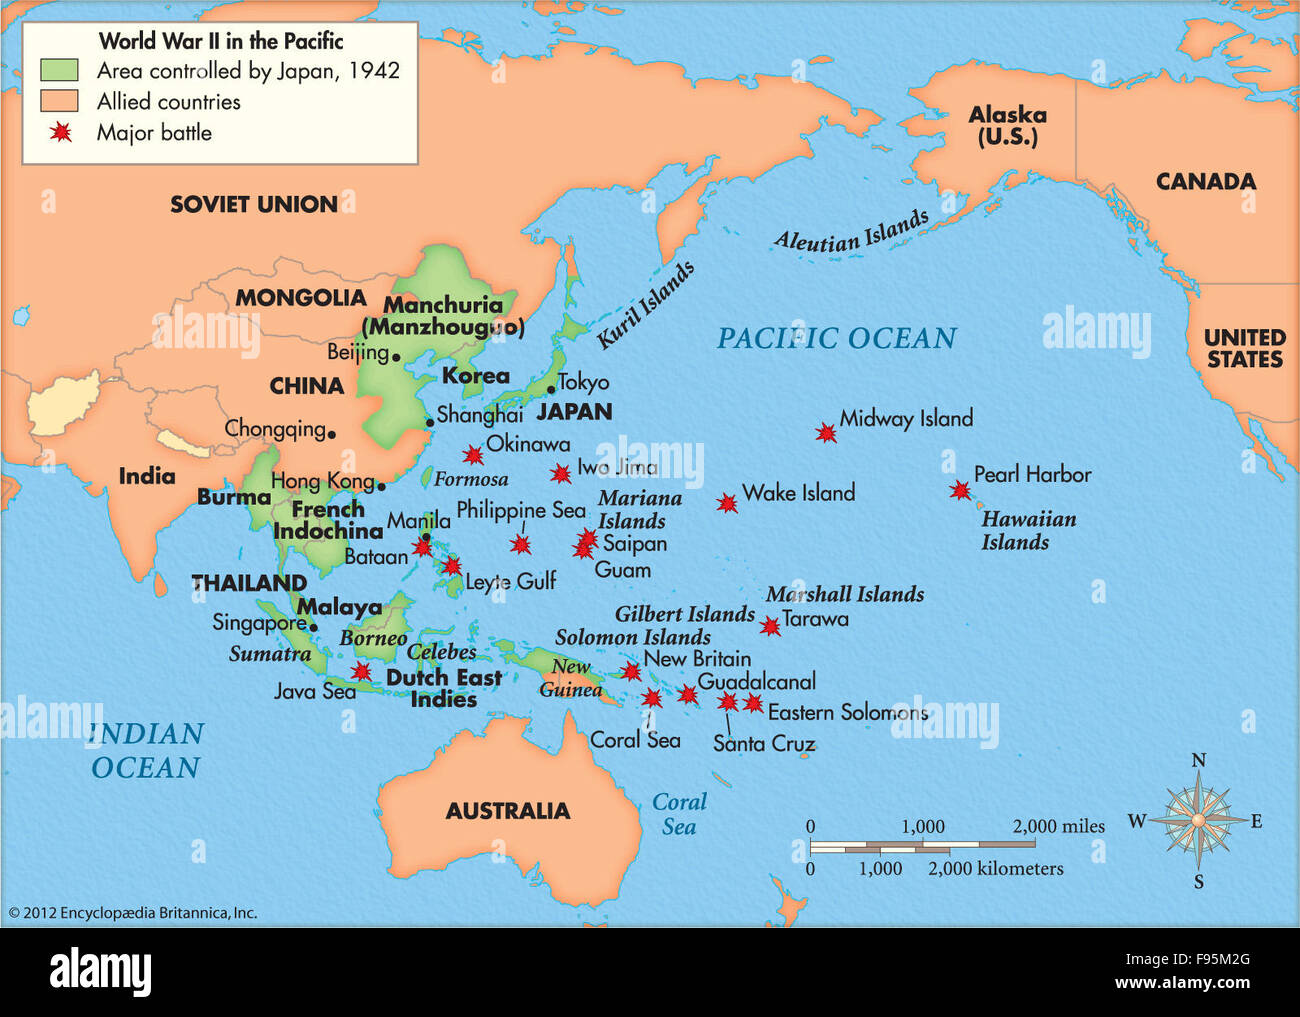 pacific battles map Battles In The Pacific During World War Ii Stock Photo Alamy pacific battles map